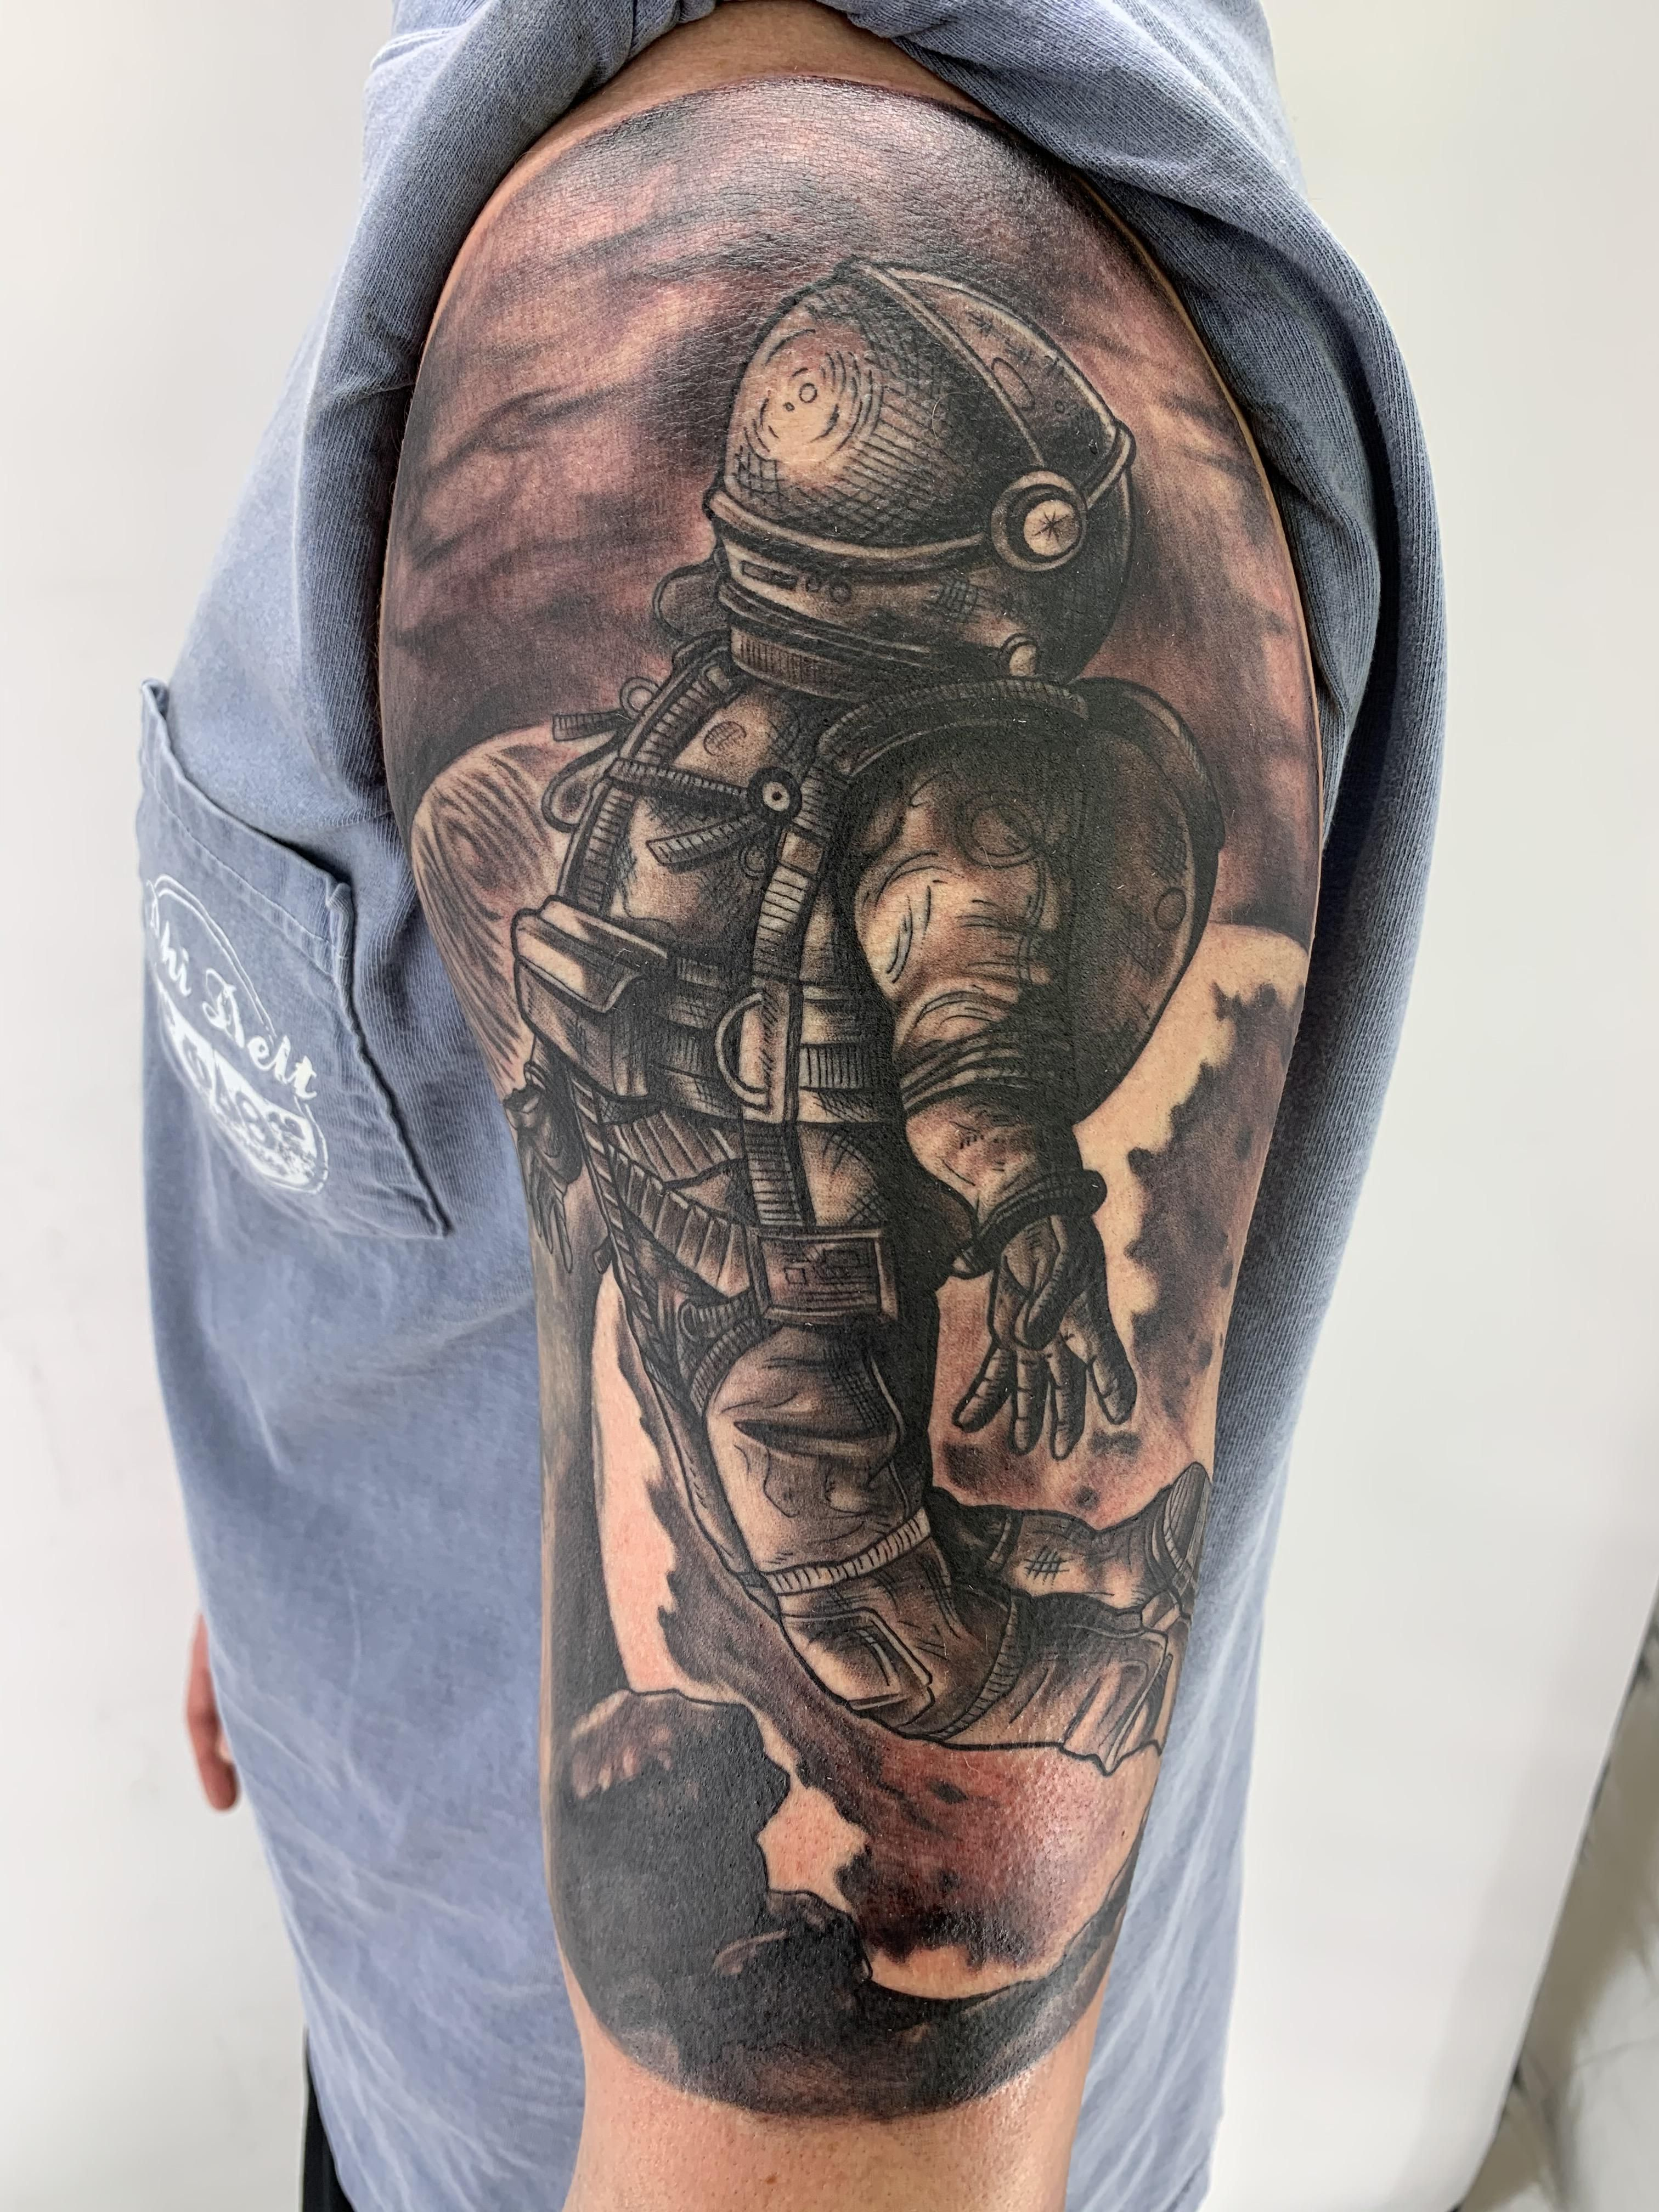 Outer Sleeve By Boneface Boneface Ink Pensacola Fl In 2020 Pensacola Fl Prison Tattoos R Tattoo